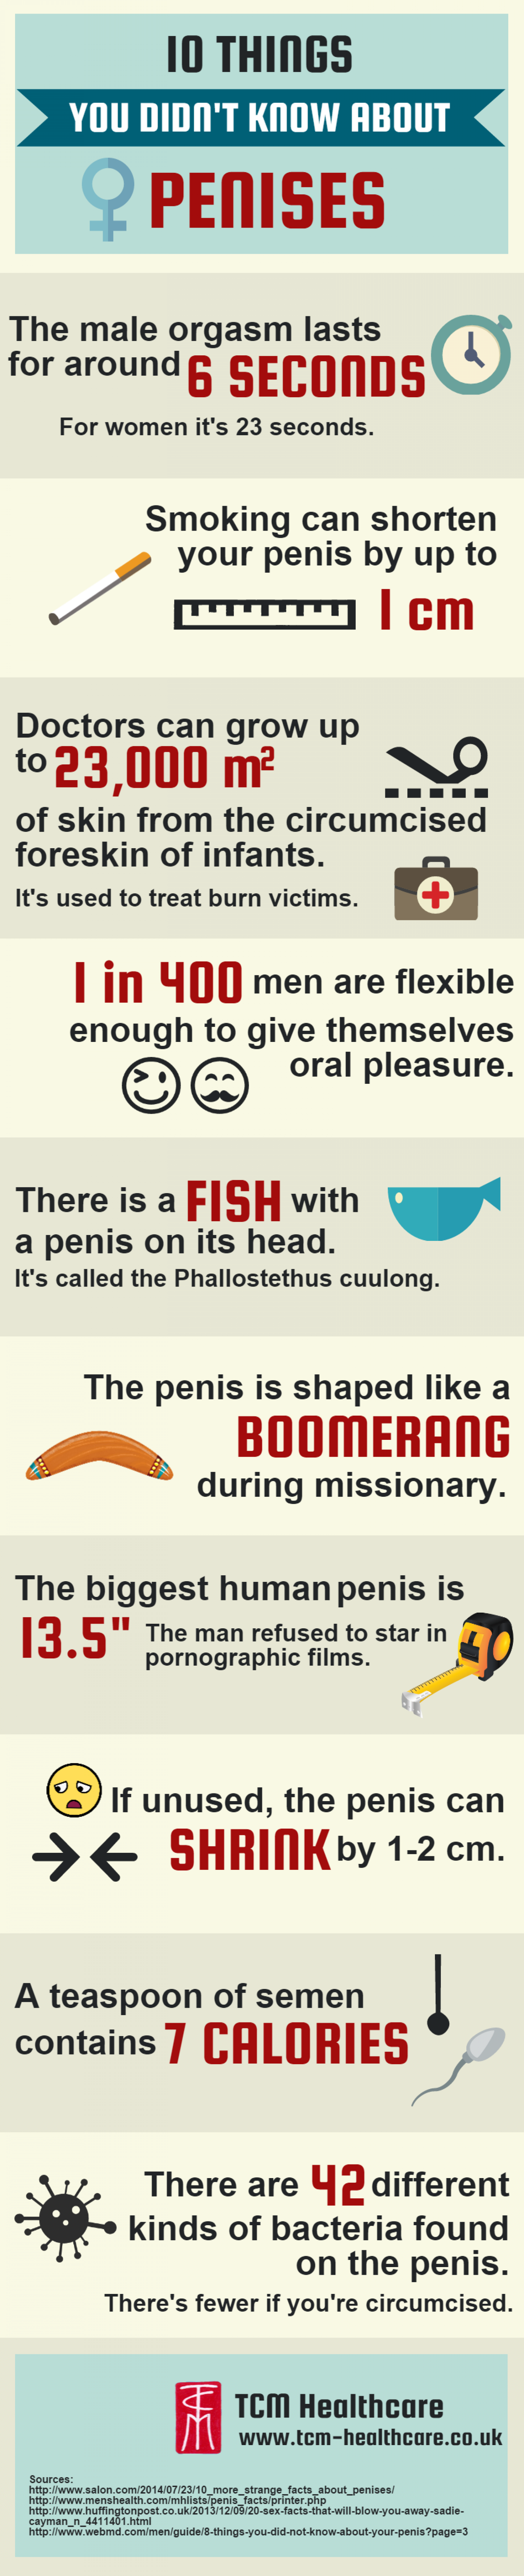 10 Things You Didn't Know About Penises Infographic